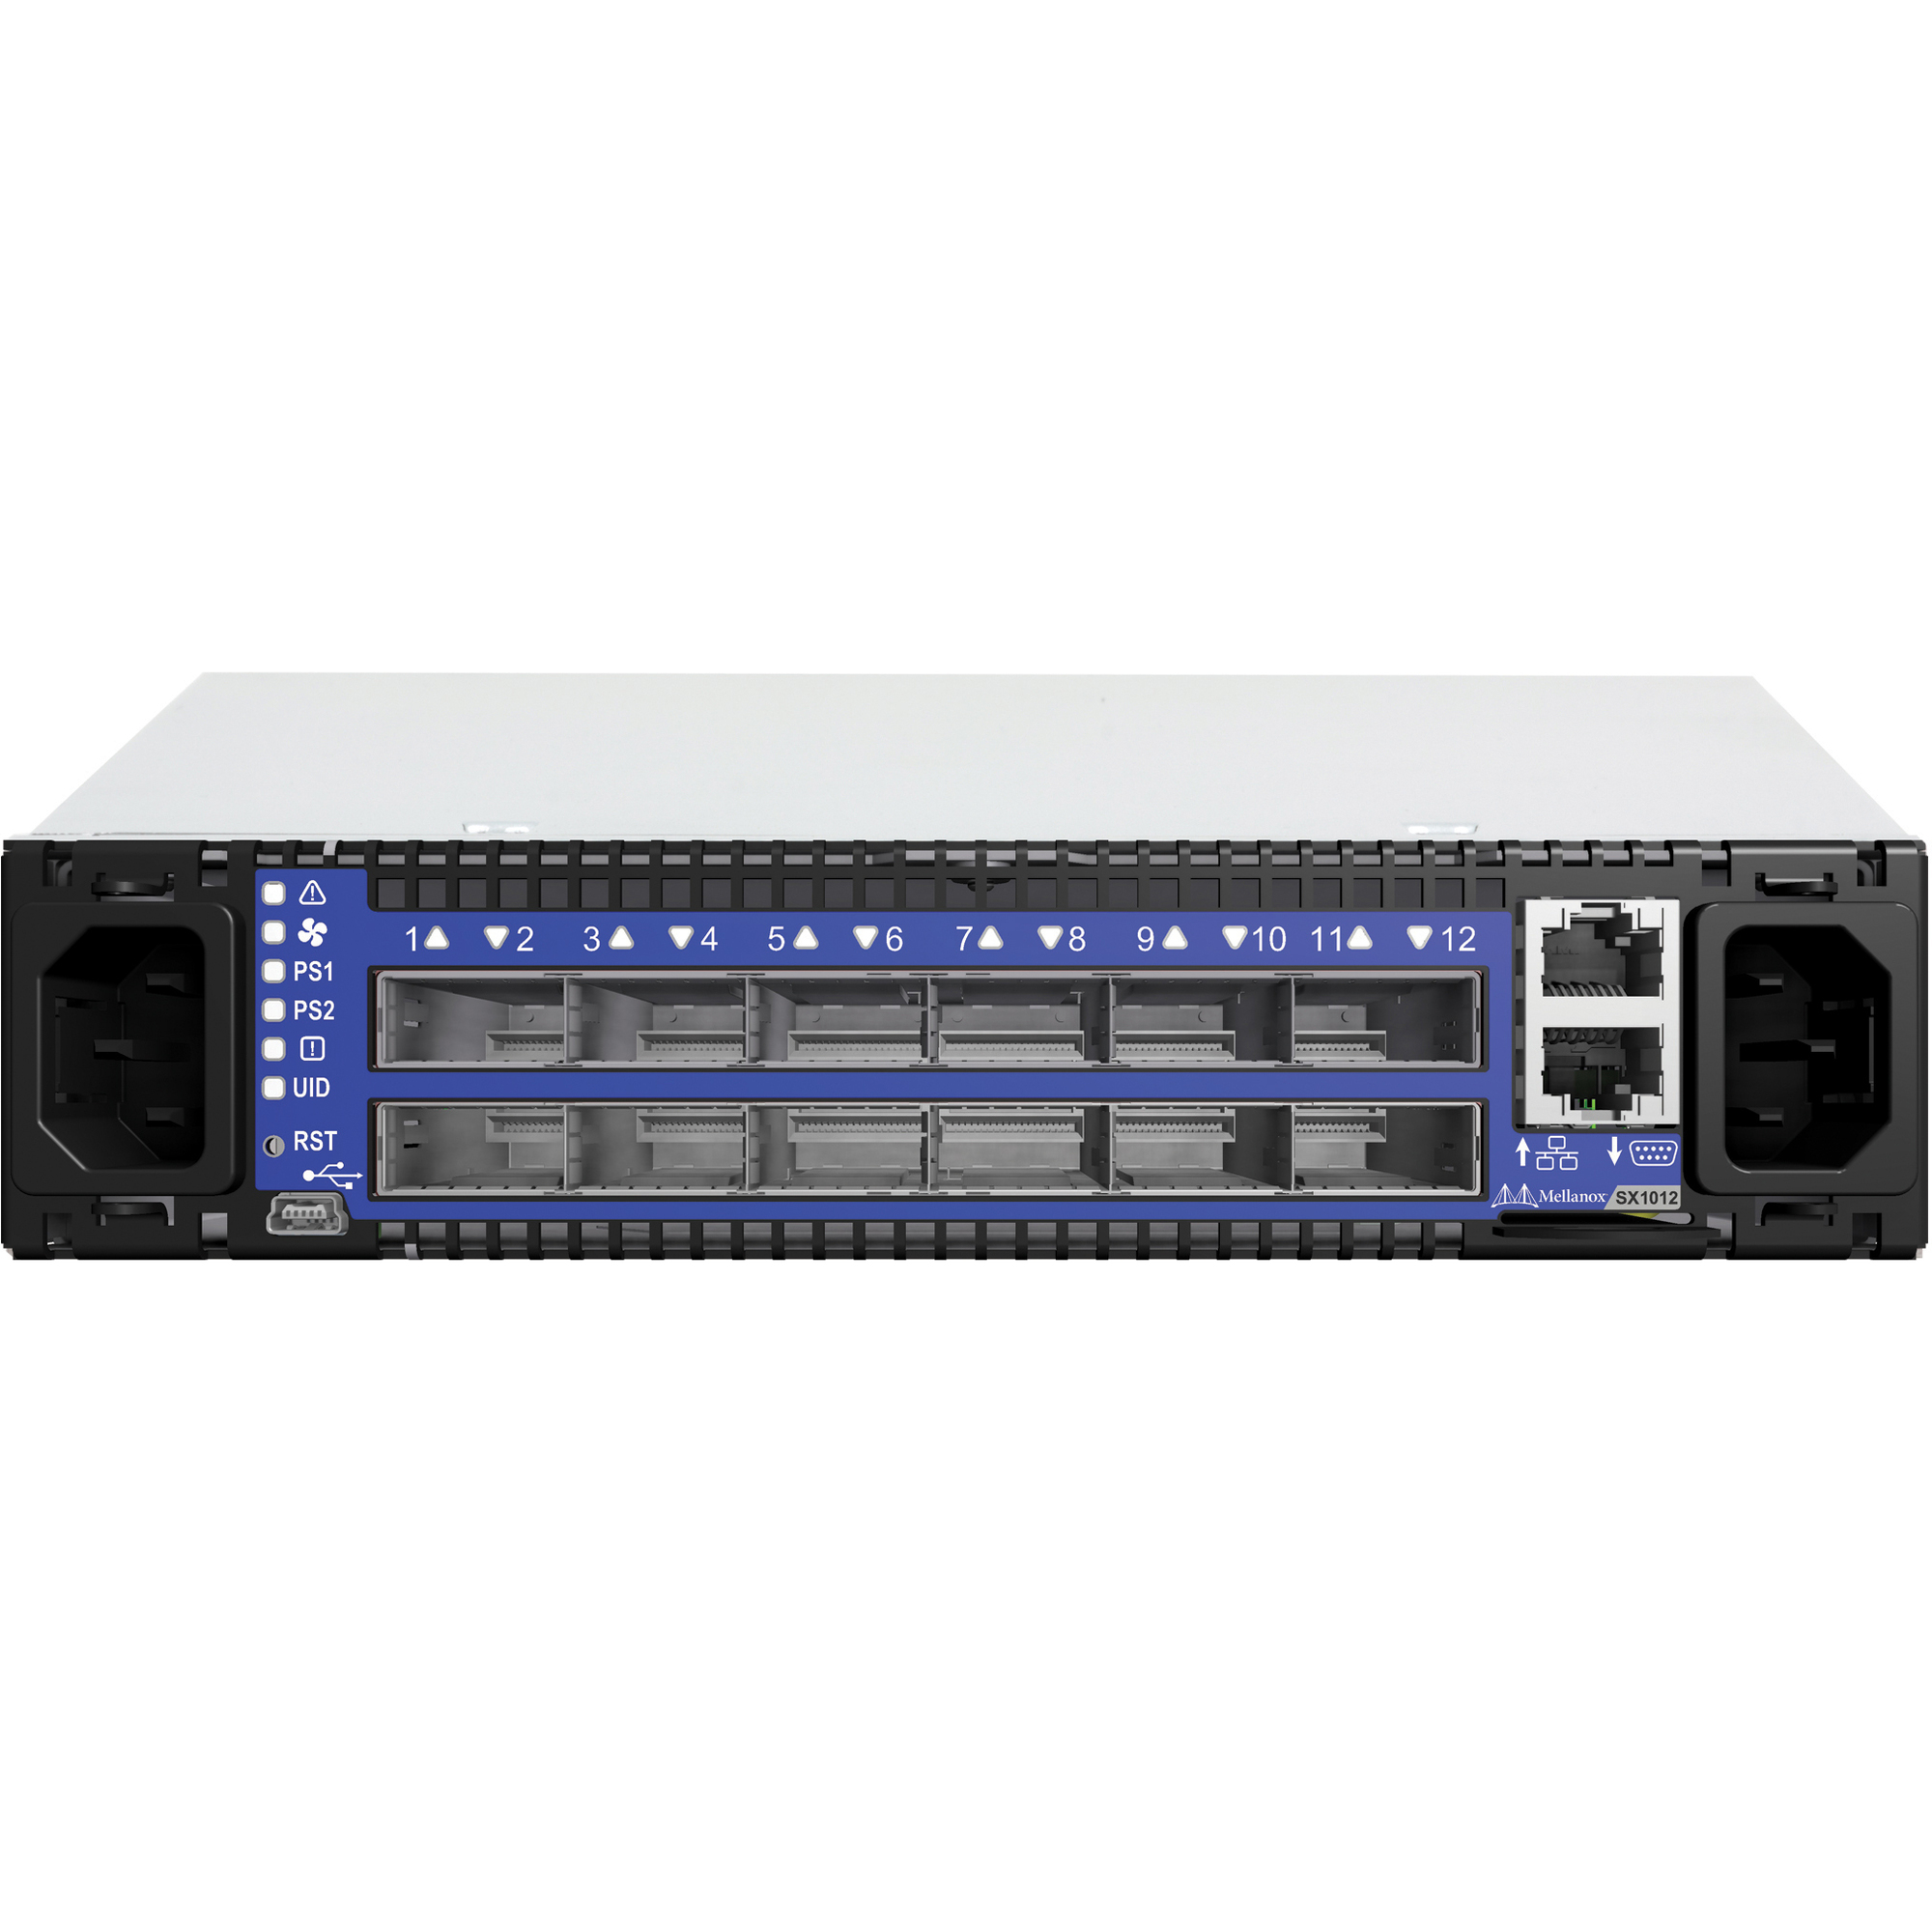 Mellanox SwitchX SX1012 Manageable Layer 3 Switch - 3 Layer Supported - 1U High - Rack-mountable